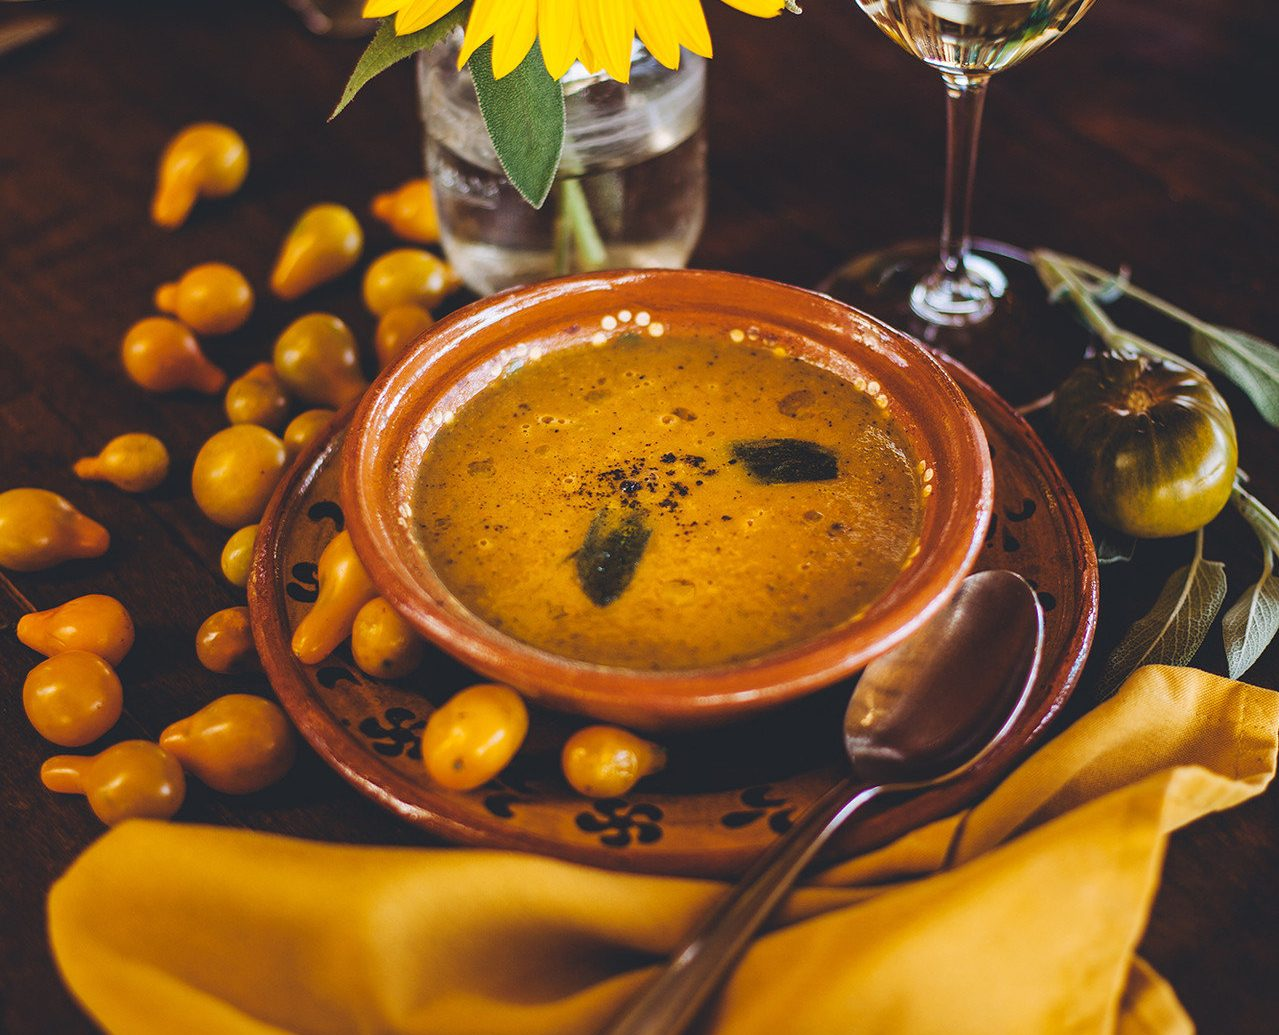 Cultural culture Dining Eat food Food + Drink mexican traditional Travel Tips table color yellow indoor flower plant macro photography produce flowering plant